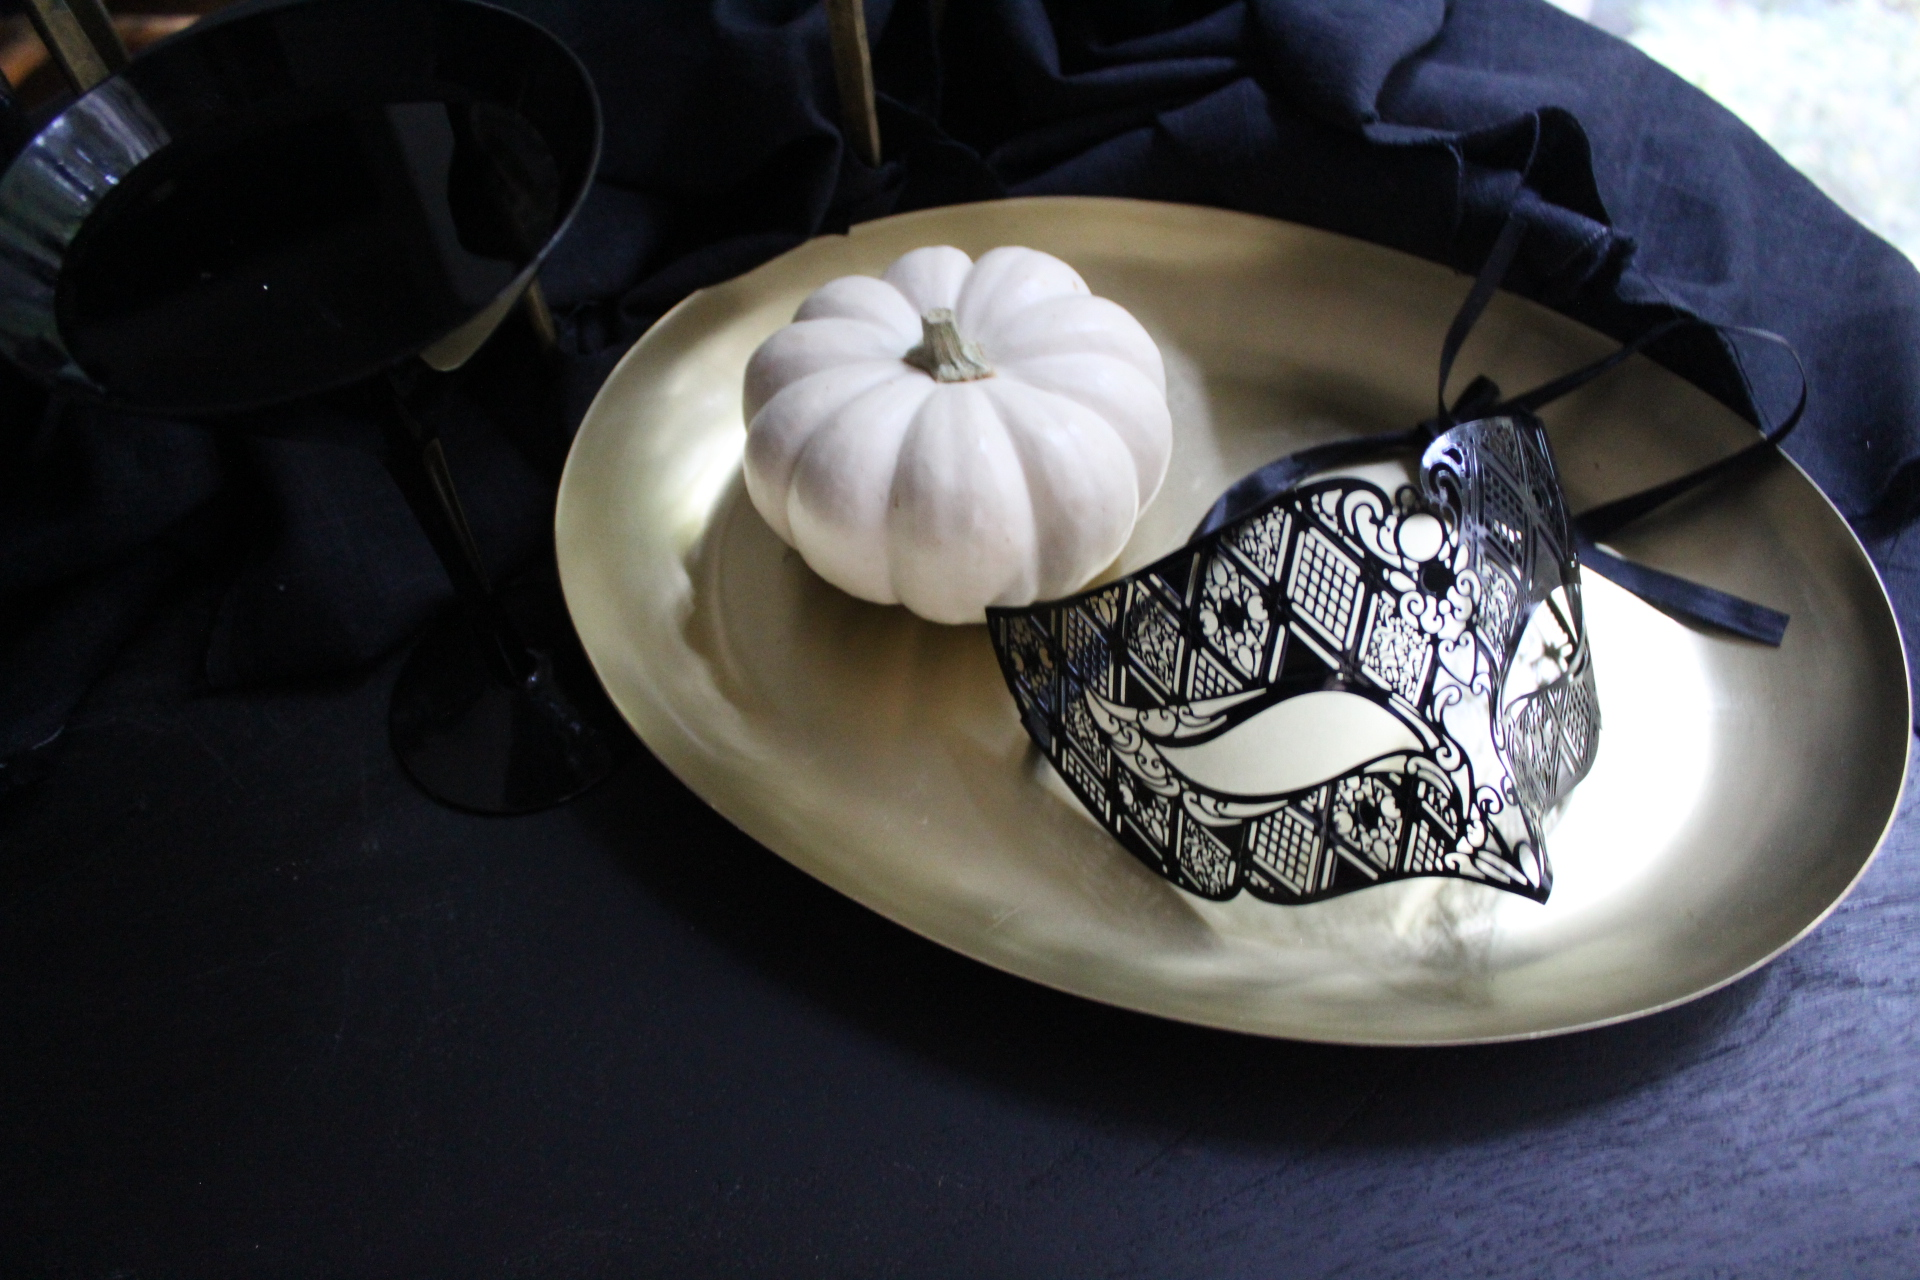 MASKED...I like to use masquerade masks as table decor scattered around for guests to try on if they are feeling naughty! Also doubles a last minute costume for anyone who arrives without!  BRASS...I love this brass candelabra from Crate & Barrel. It allows you to drape the linen or fill with pumpkins or flowers so easily. Bonus:it's on super sale right now for only $24.95! Looks great with or without tapers in it.